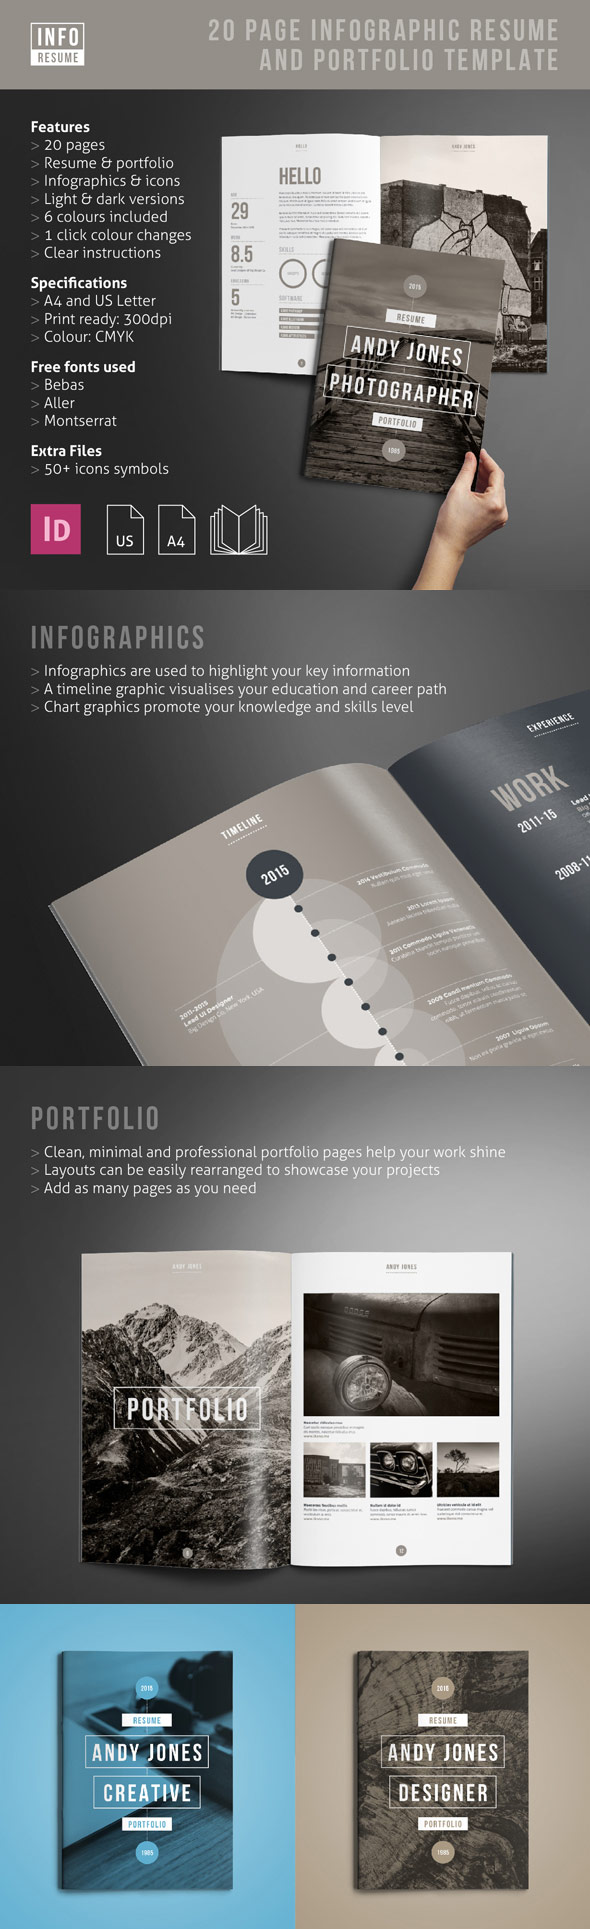 creative dynamic resume cv templates for professional jobs in portfolio infographic set Resume Professional Resume Portfolio